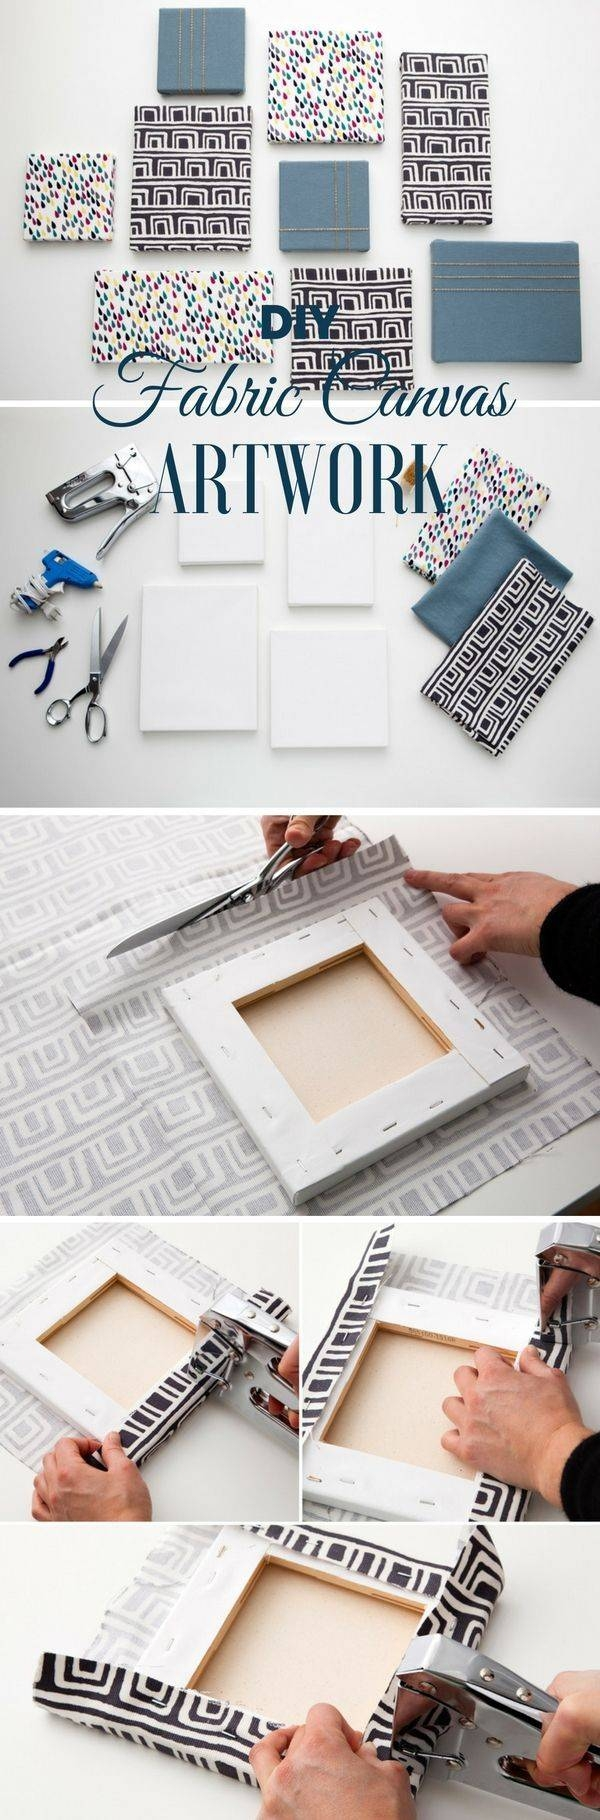 25+ Unique Diy Wall Art Ideas On Pinterest | Diy Wall Décor, Diy With Current Do It Yourself 3D Wall Art (View 2 of 20)